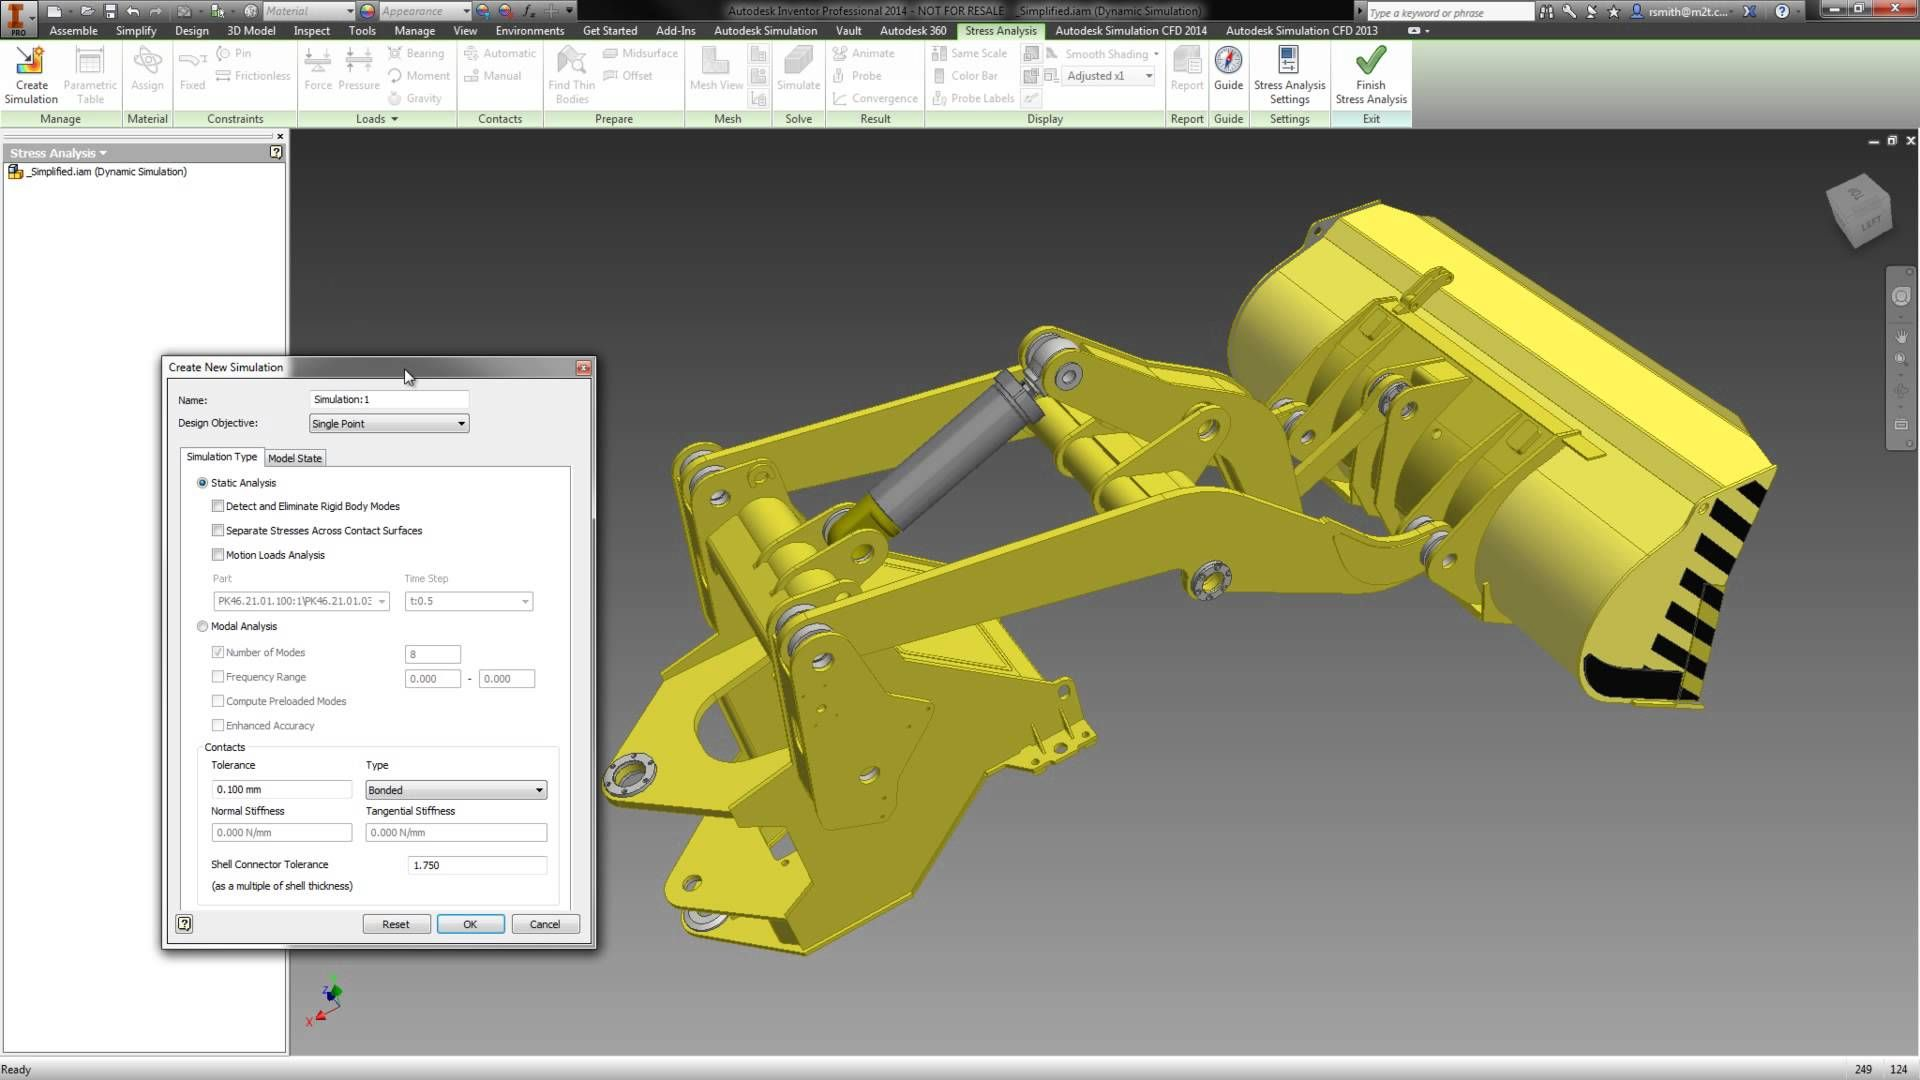 Autodesk Inventor Simulation Workflow: Dynamic Simulation to